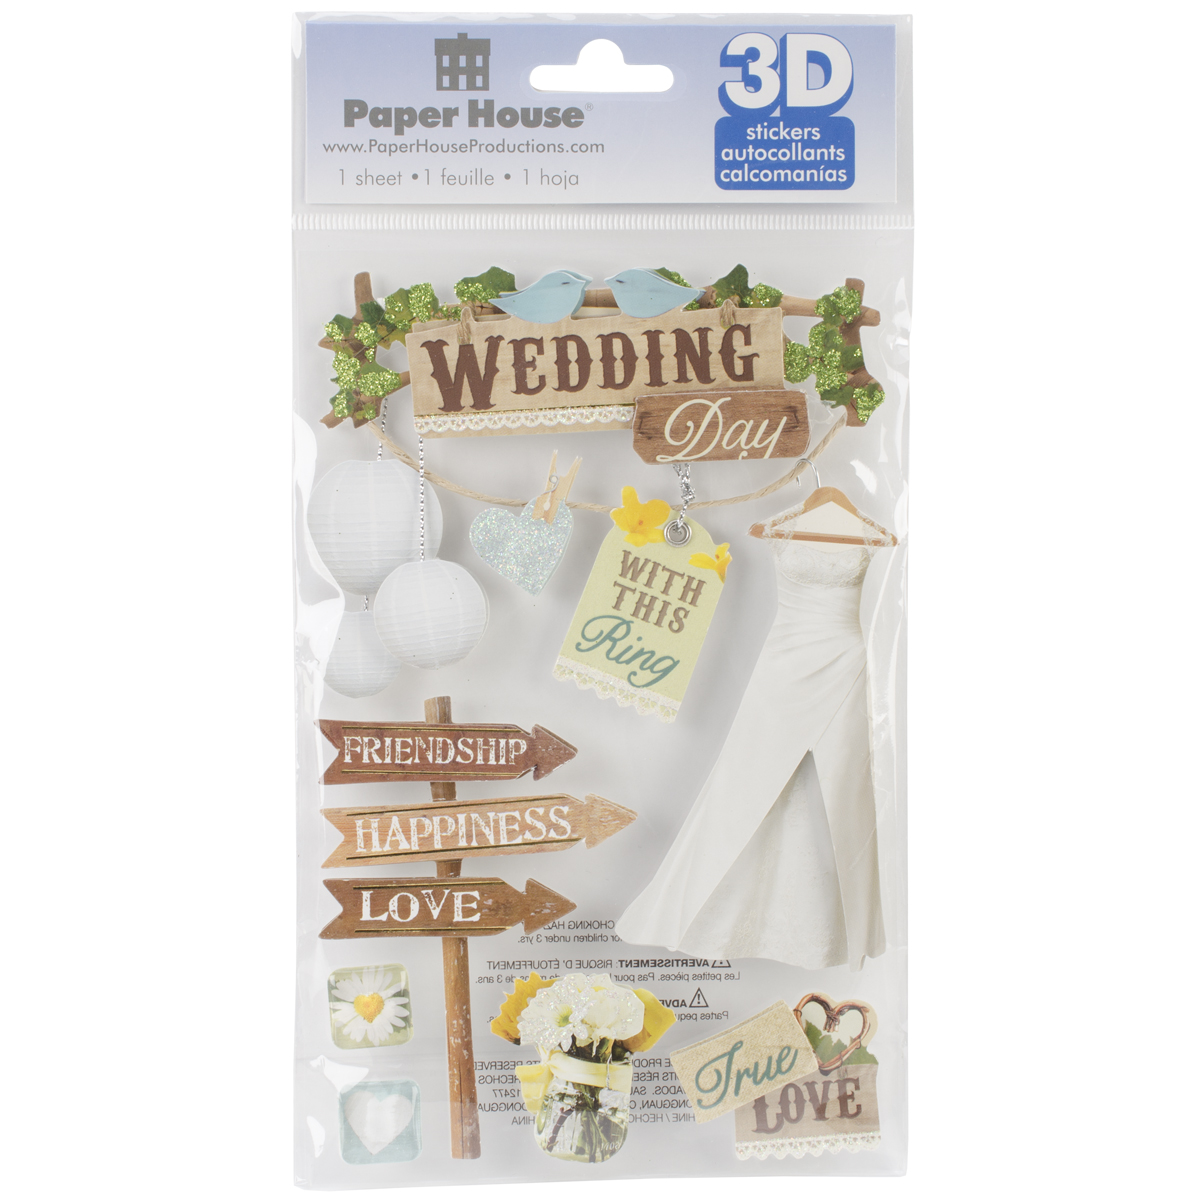 Paper House 3D Stickers 4.5X7.5 -Wedding